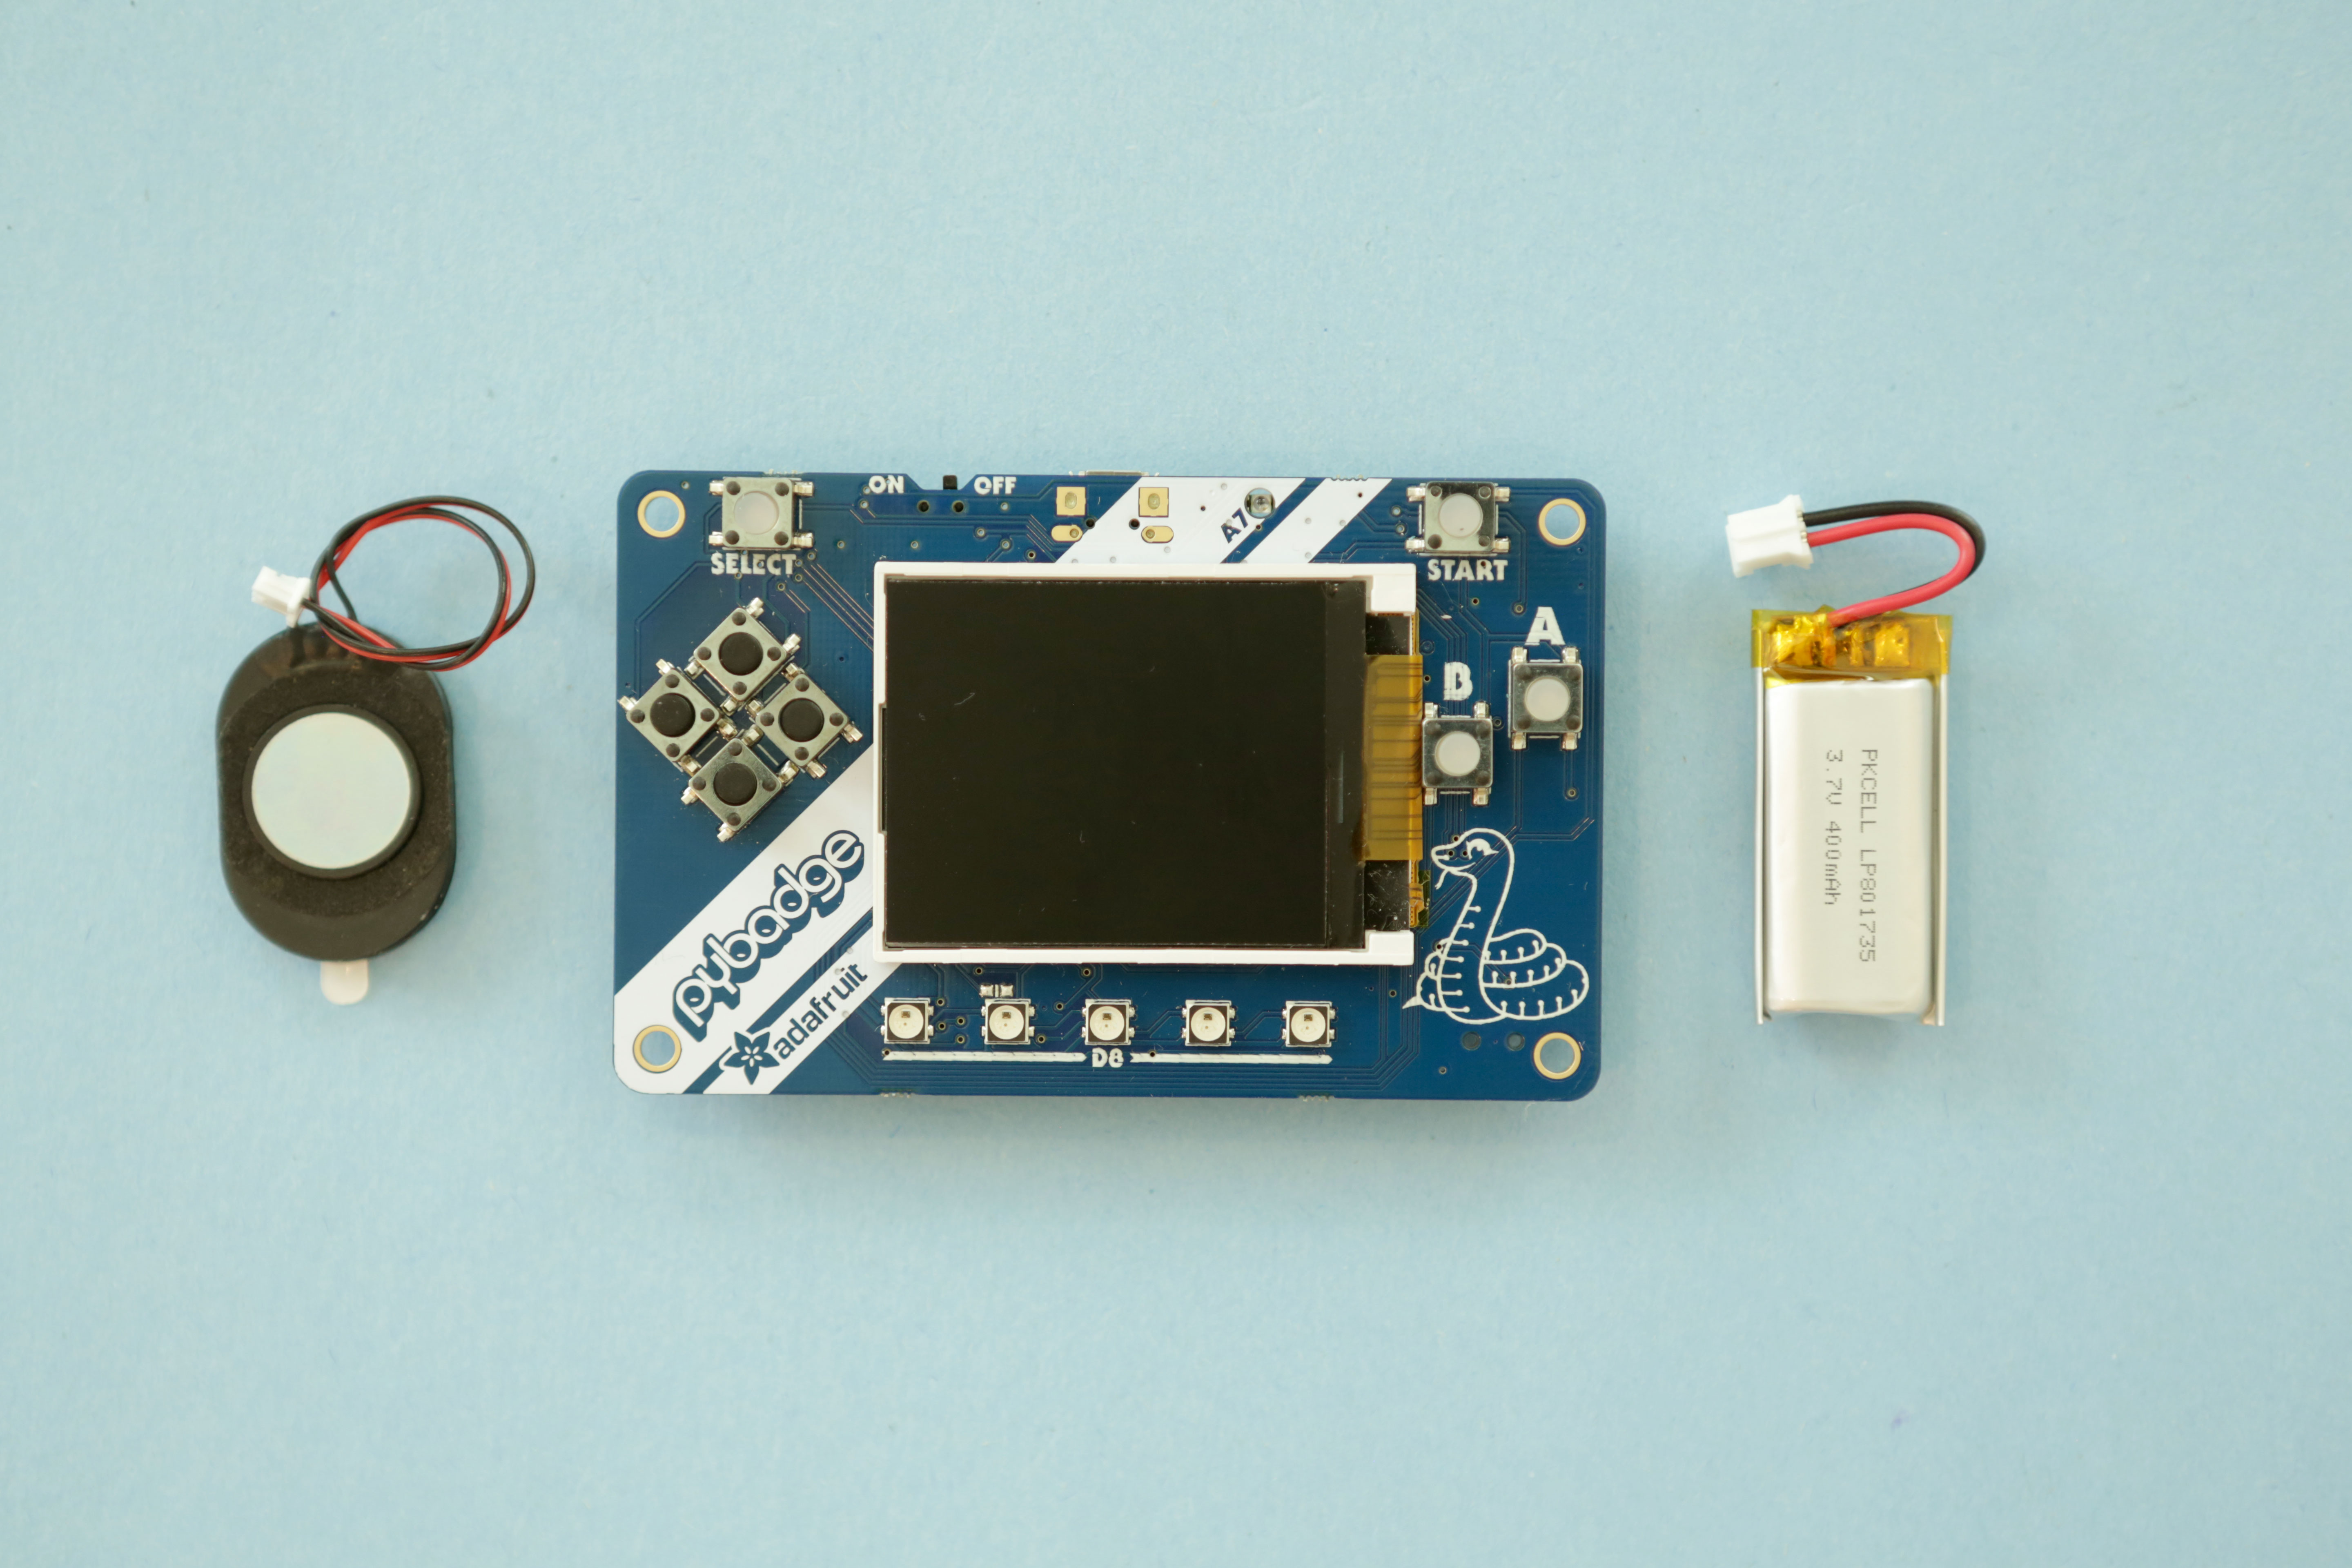 COMING SOON – Circuit Playground Bluefruit – Bluetooth Low